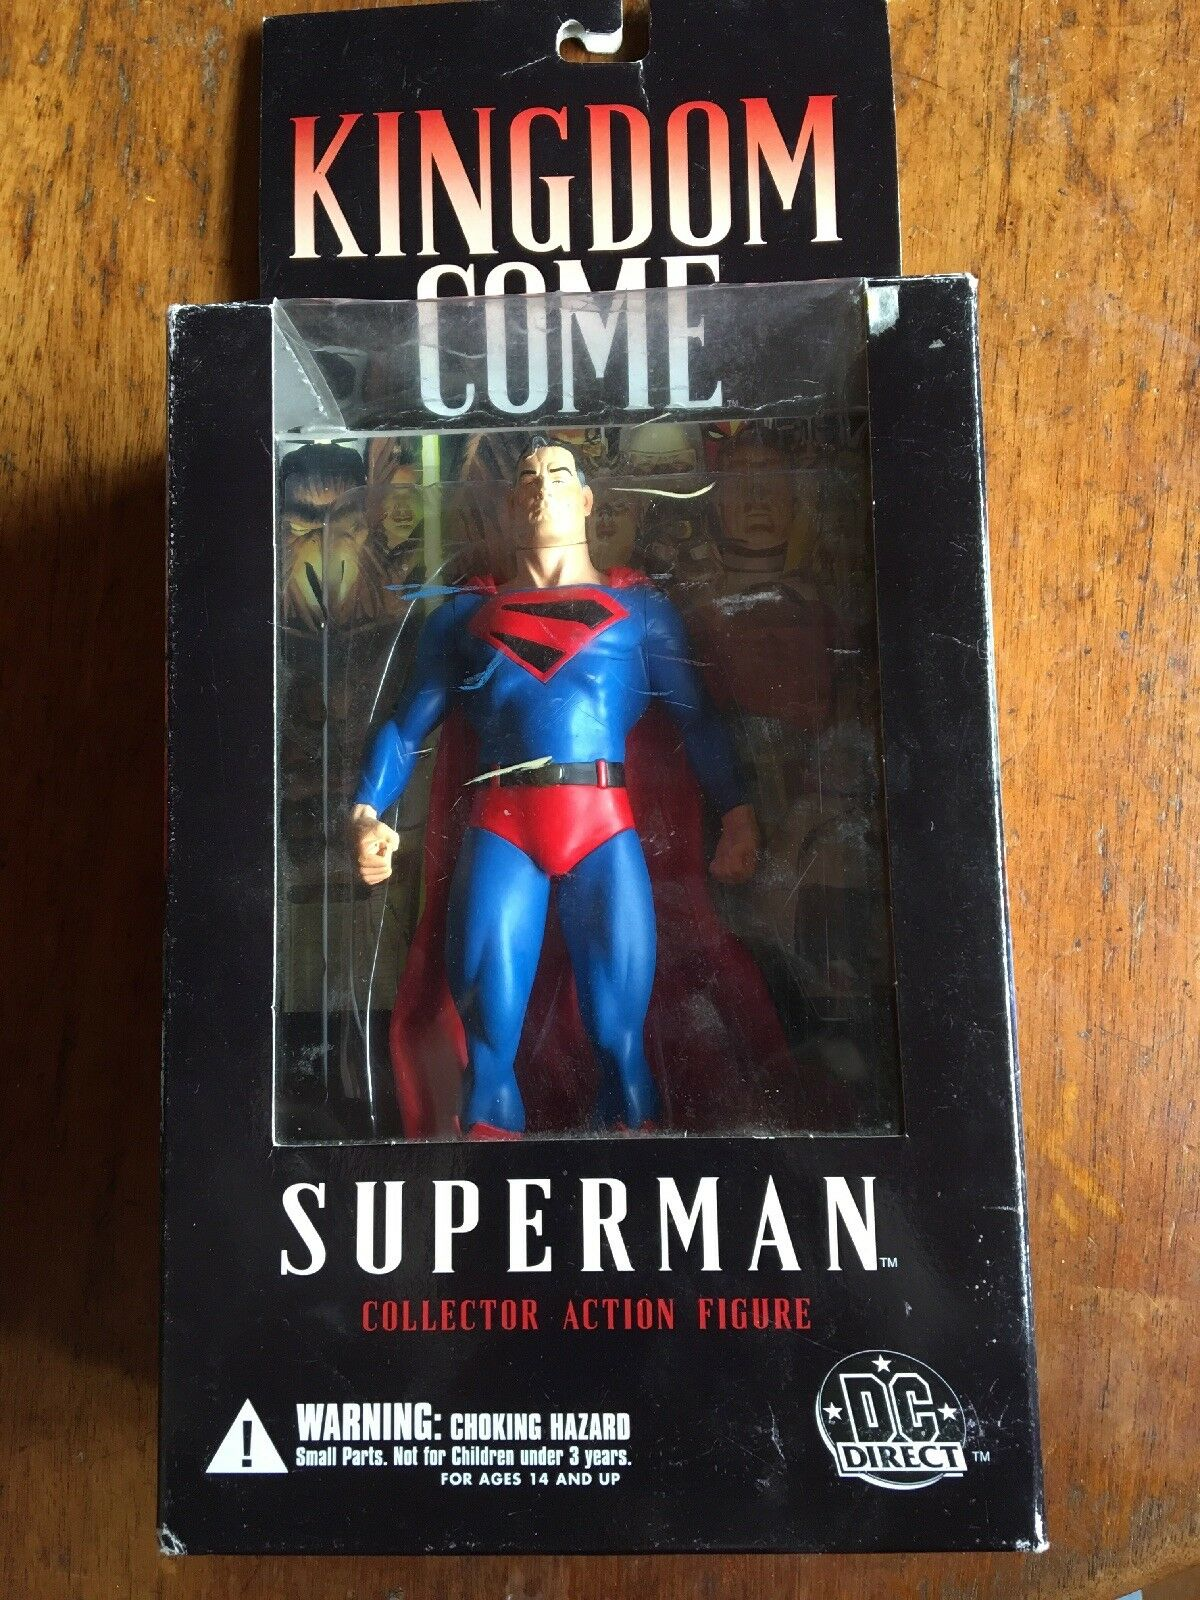 DC Direct Alex Ross Kingdom Come SUPERMAN Collector Action Figure Wave 1 - NEW